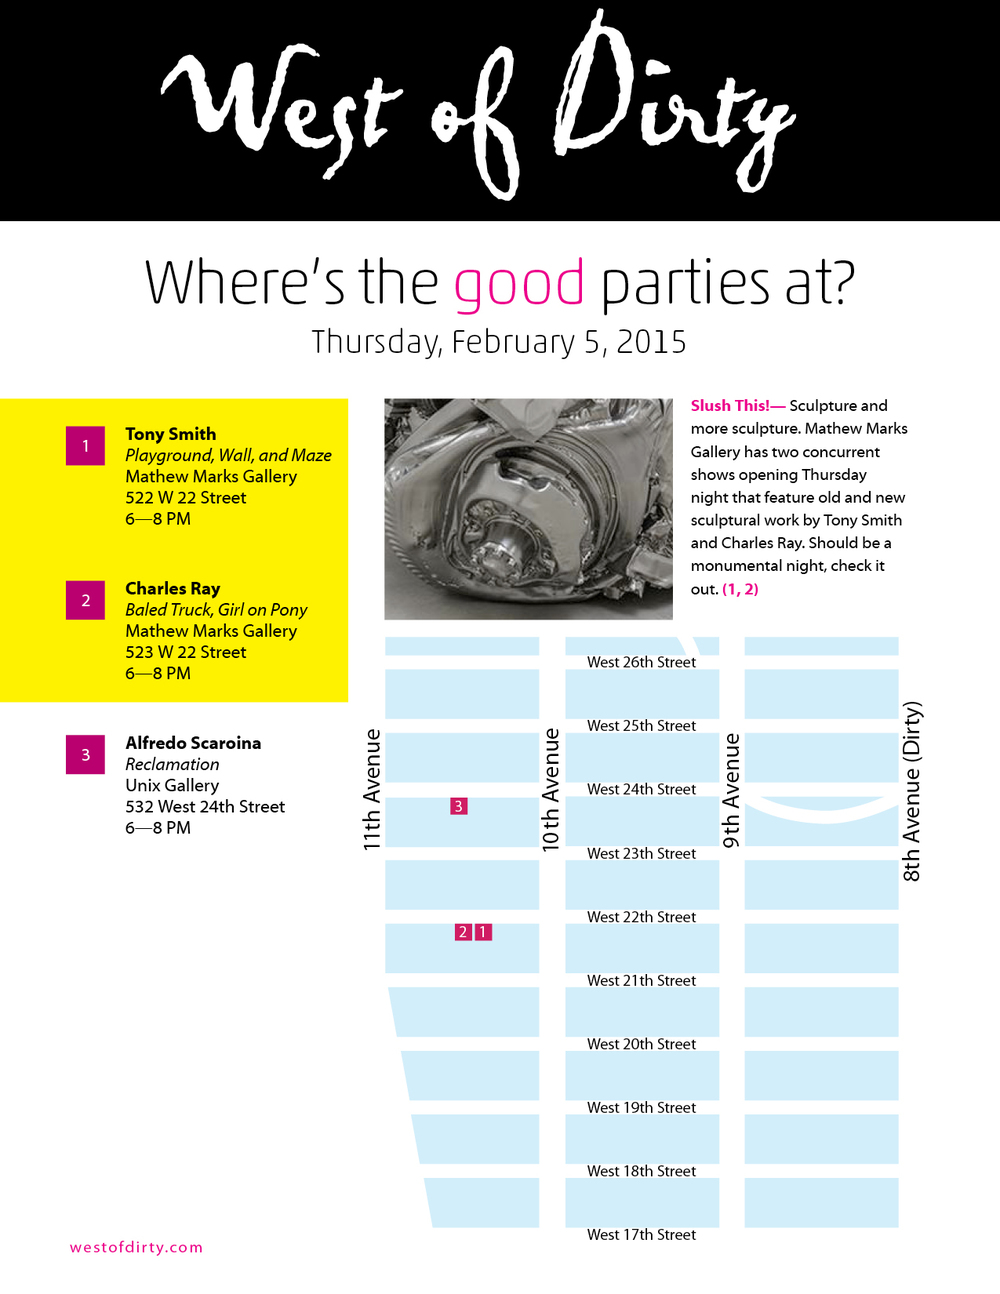 Thursday Chelsea NYC Gallery Map (2-5-15) Slush This!— Sculpture and more sculpture. Mathew Marks Gallery has two concurrent shows opening Thursday night that feature old and new sculptural work by Tony Smith and Charles Ray. Should be a monumental night, check it out.